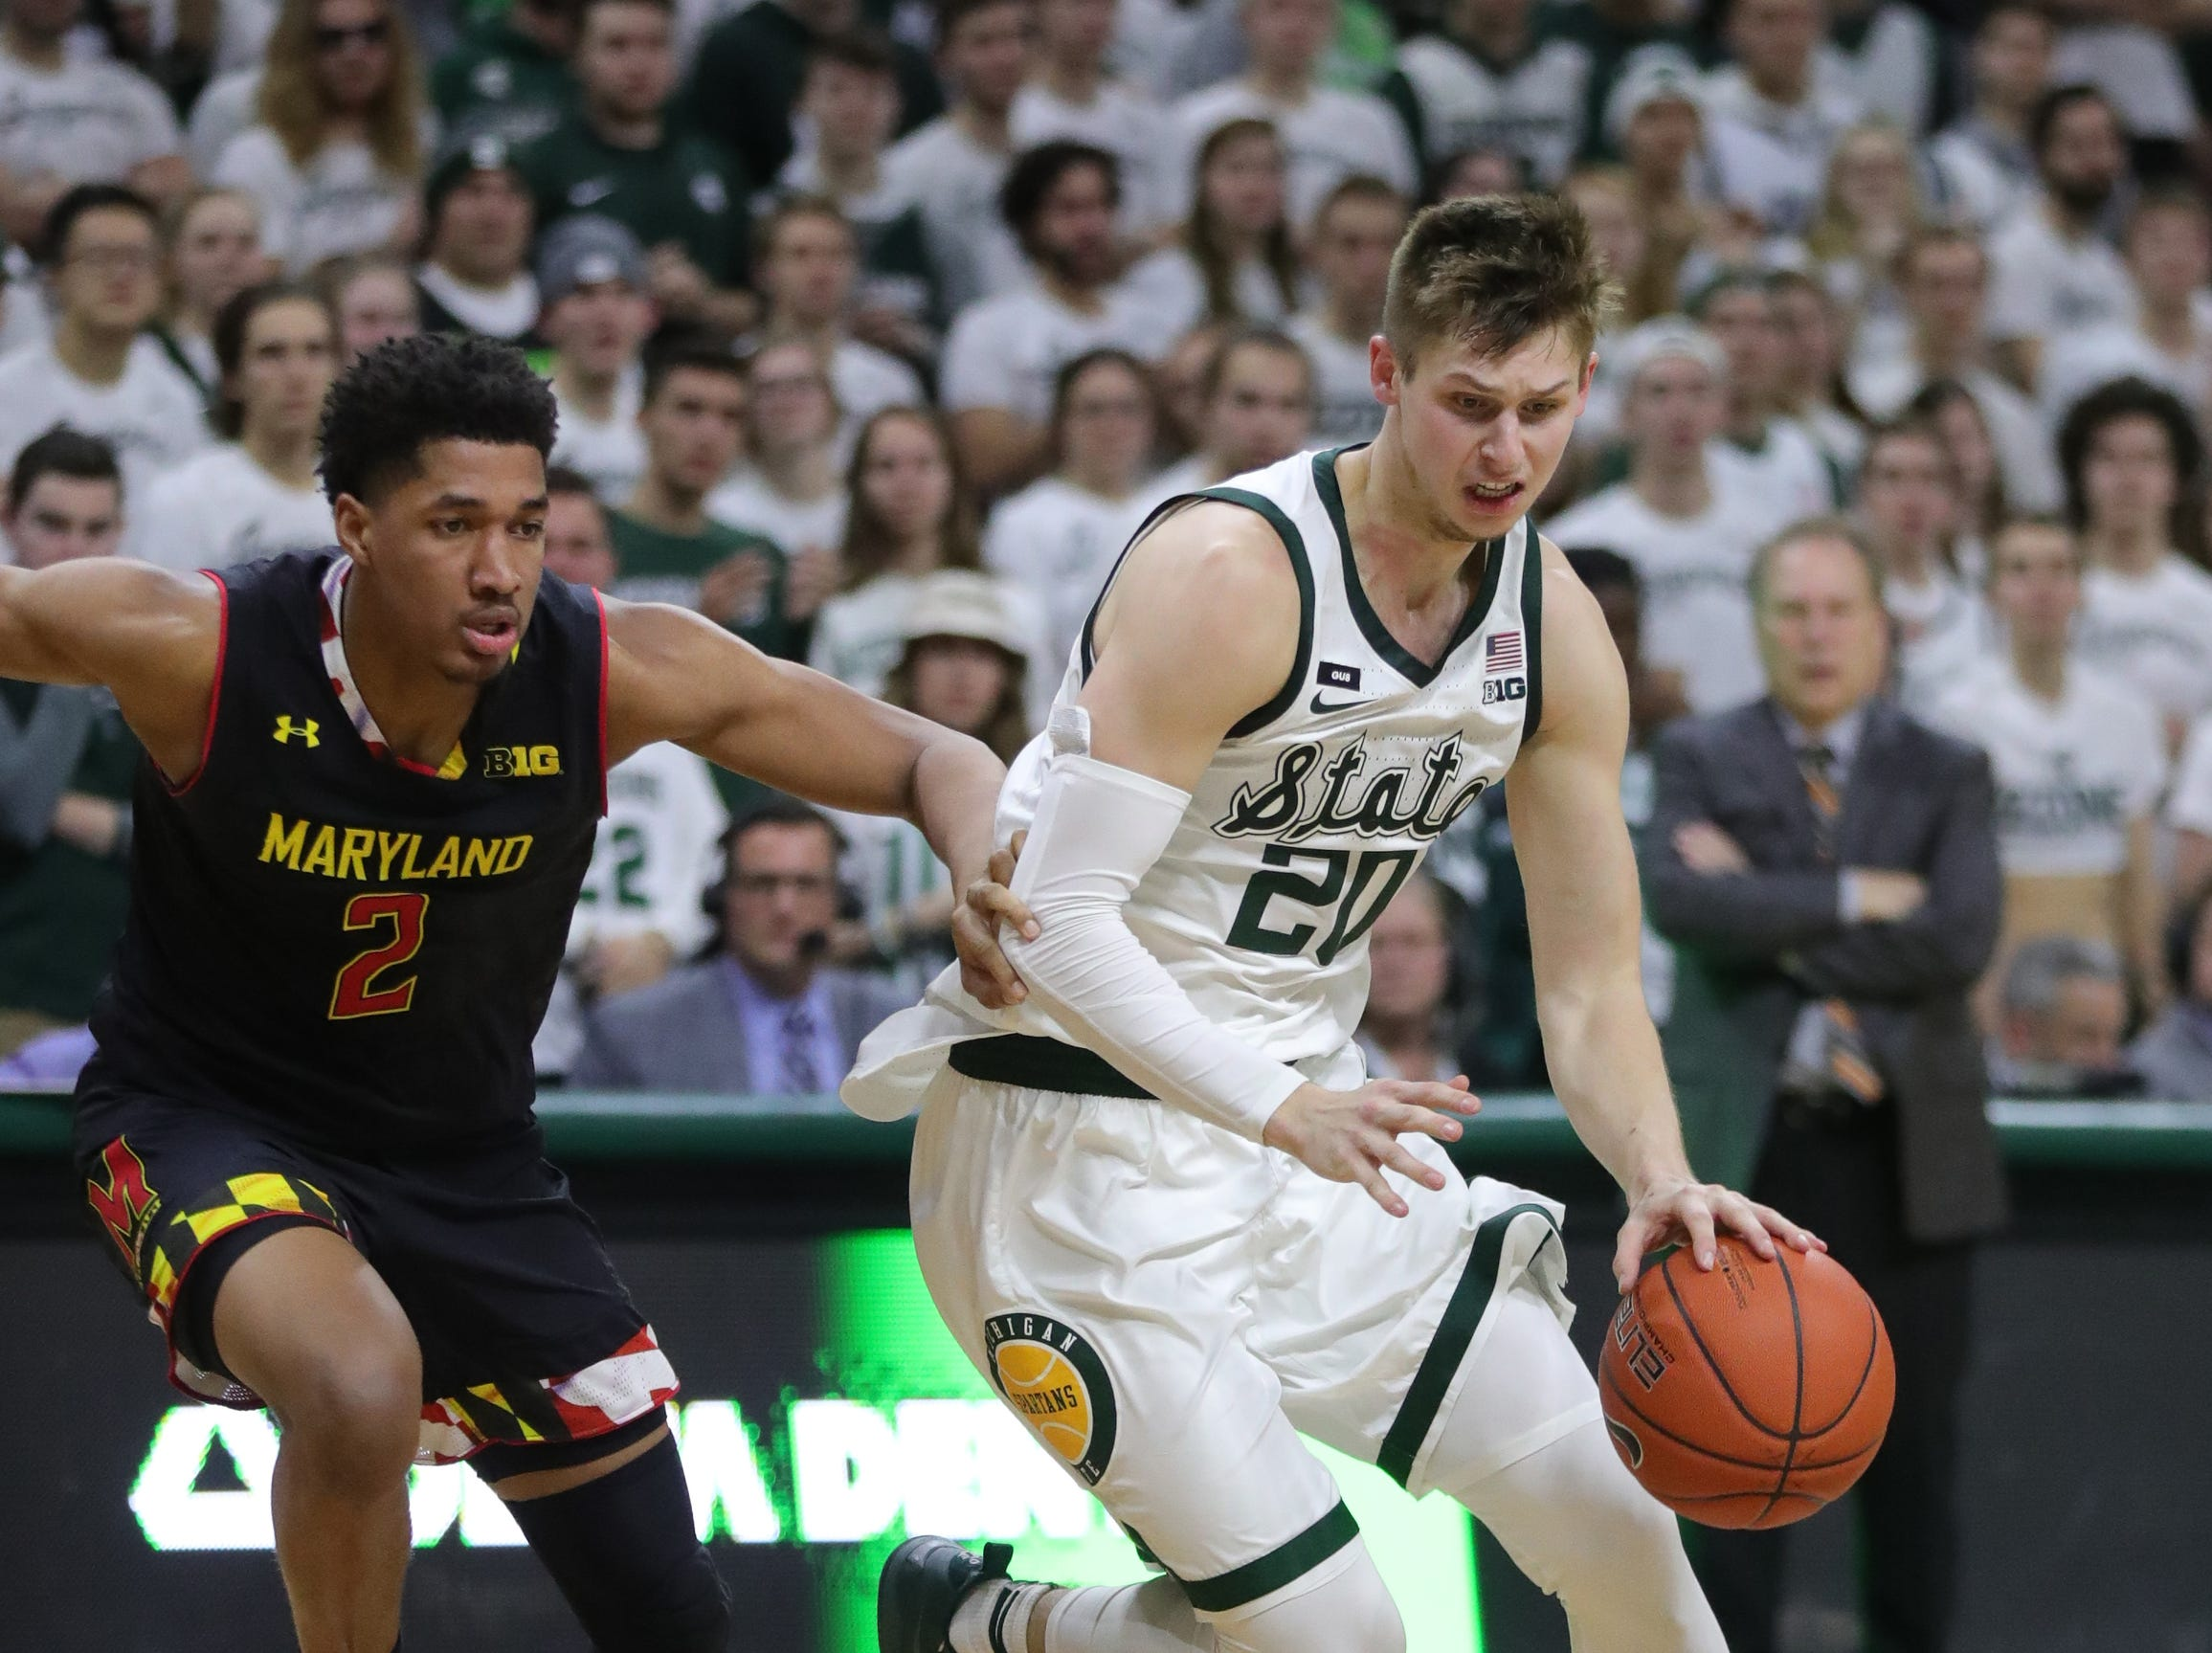 Michigan State guard Matt McQuaid drives against Maryland guard Aaron Wiggins during second-half action Monday, January 21, 2019 at the Breslin Center in East Lansing, Mich.